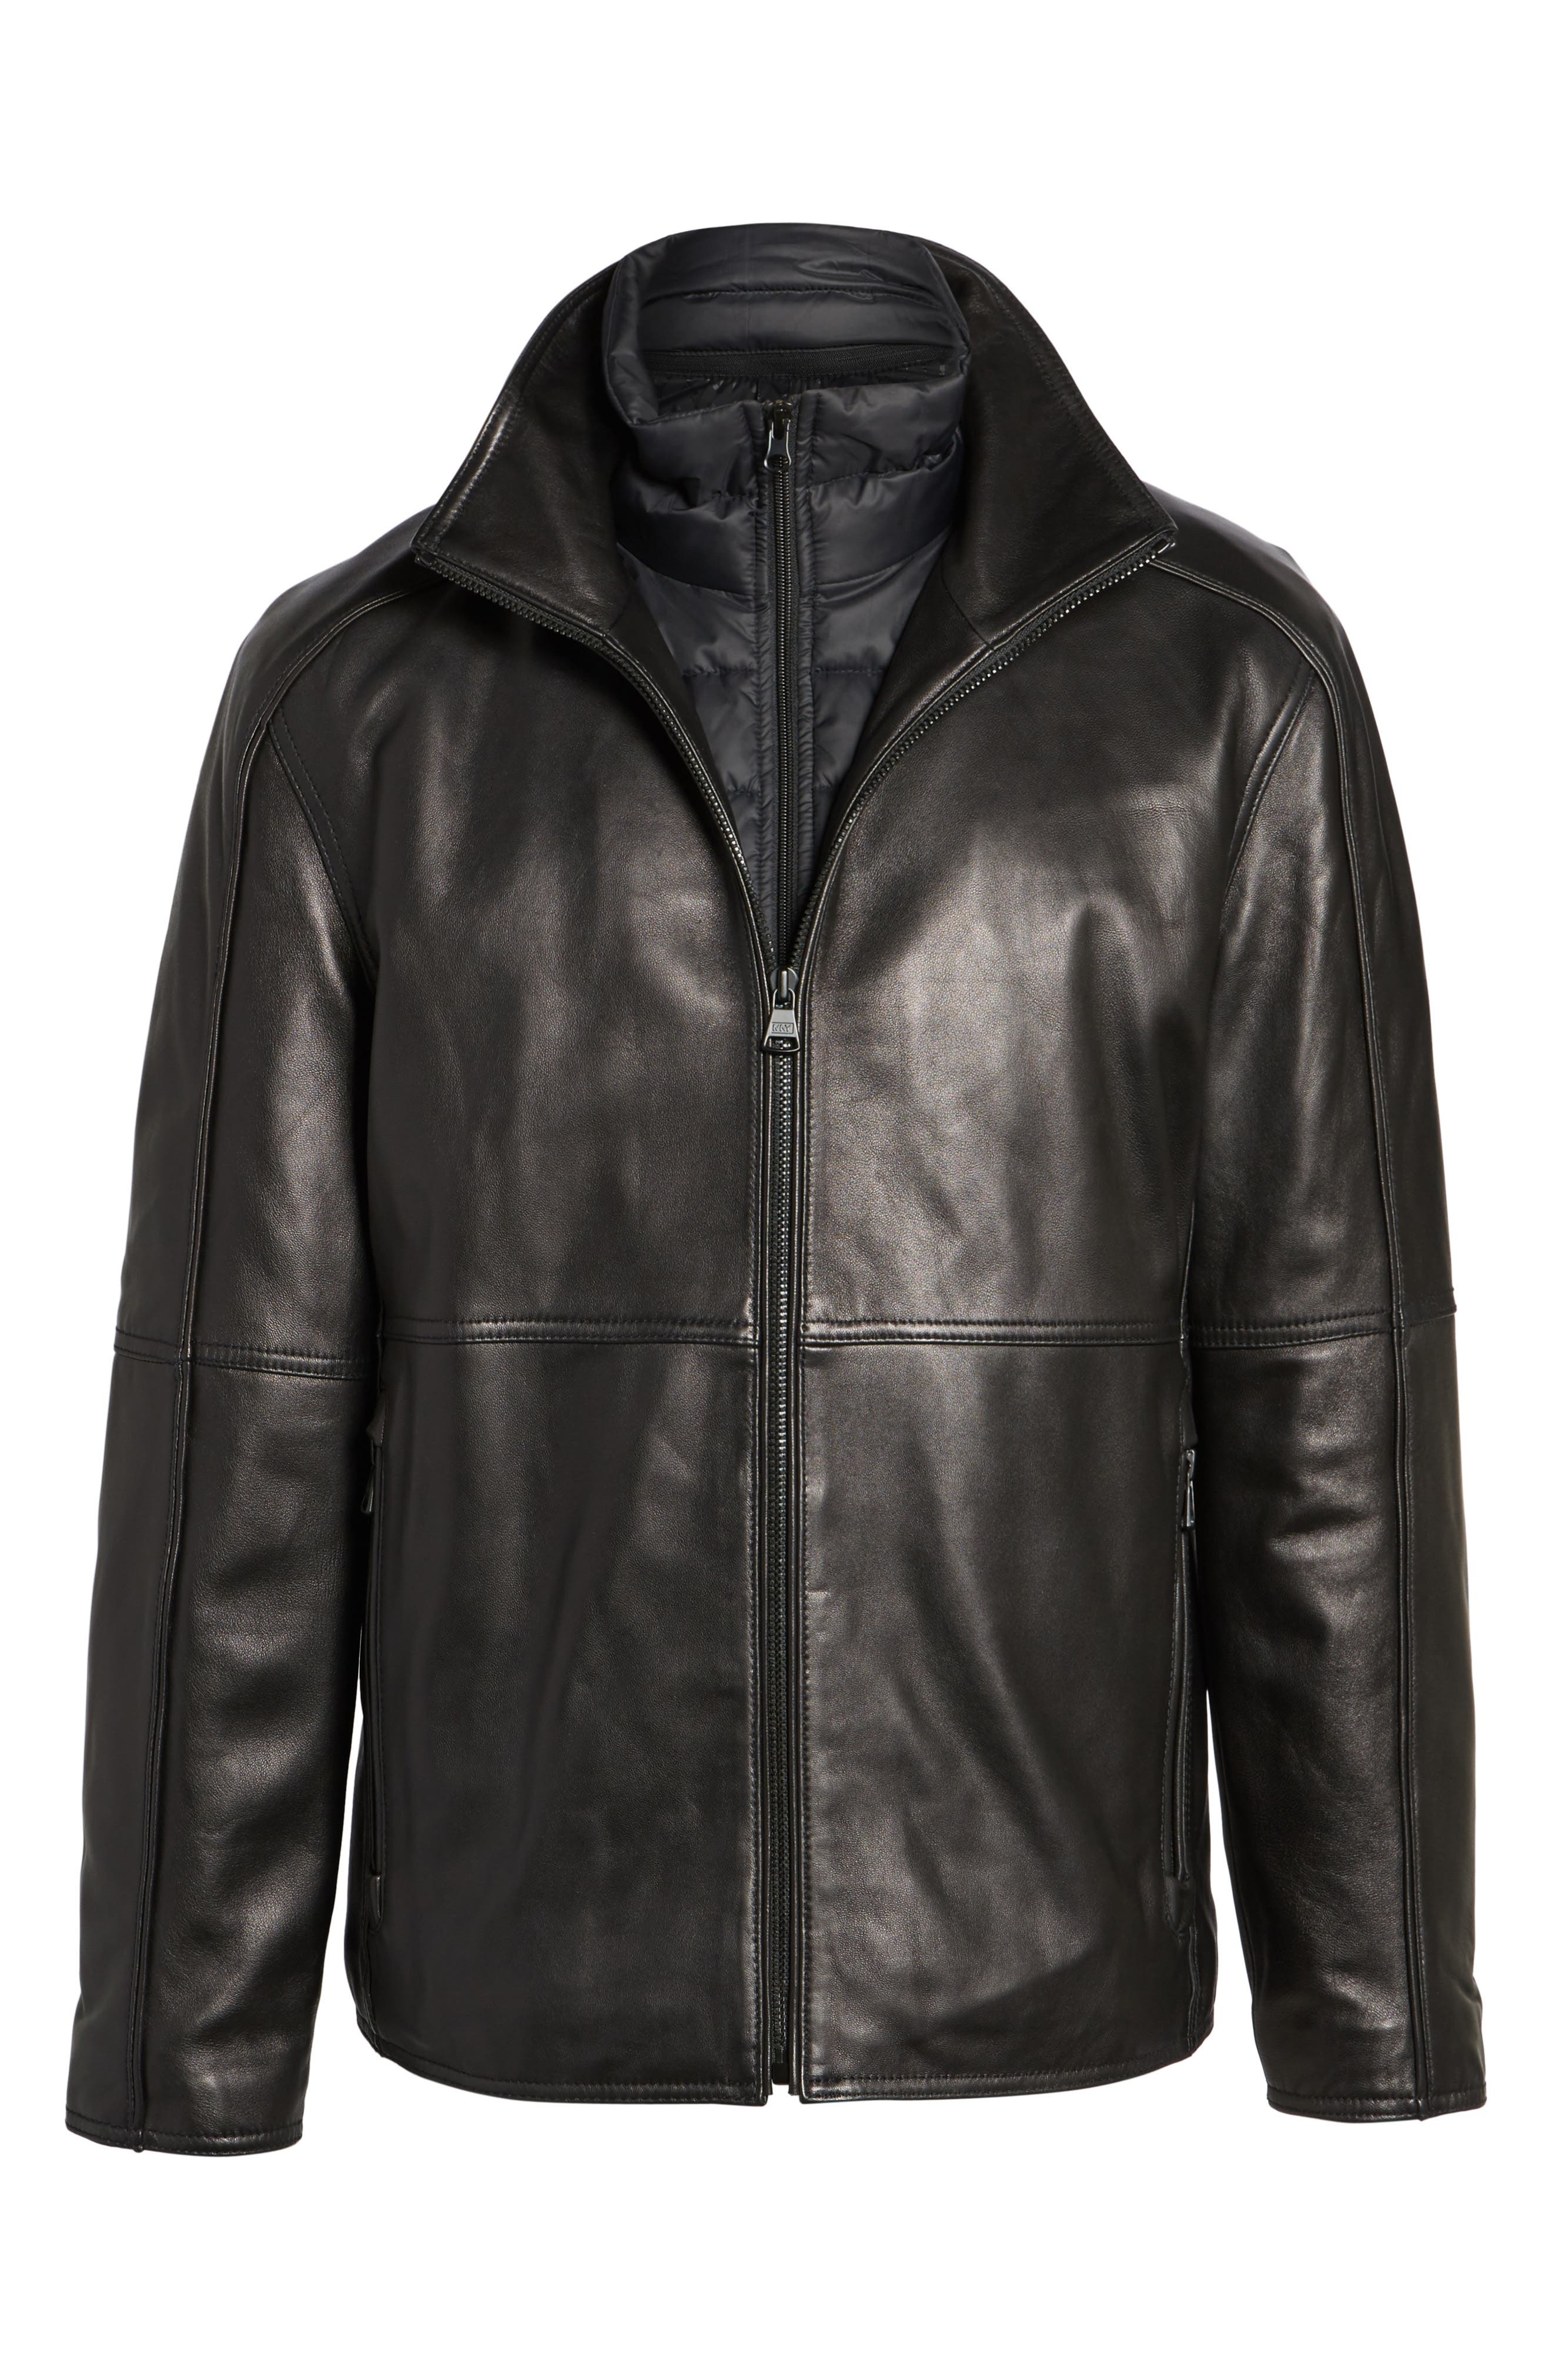 Leather Jacket with Quilted Insert,                             Alternate thumbnail 5, color,                             Black